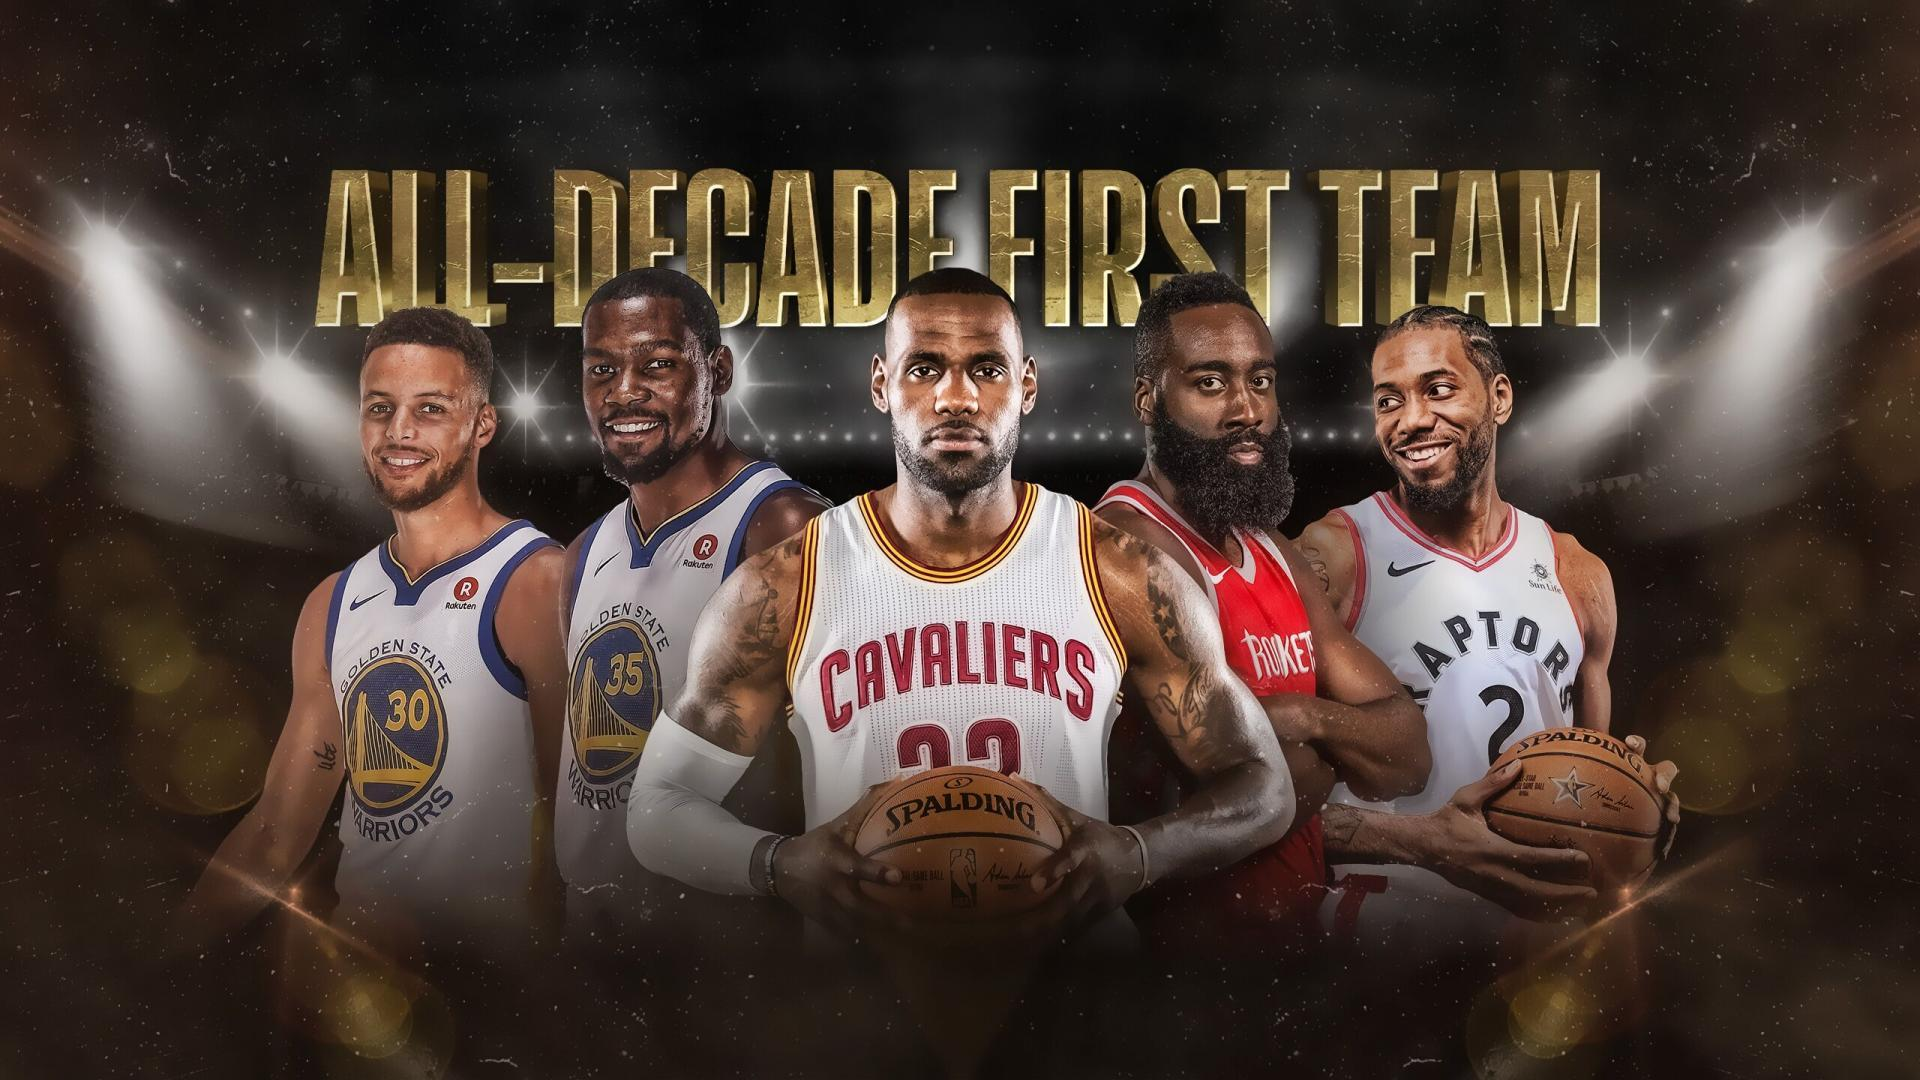 All-Decade Team: Best NBA players of the 2010s | NBA com